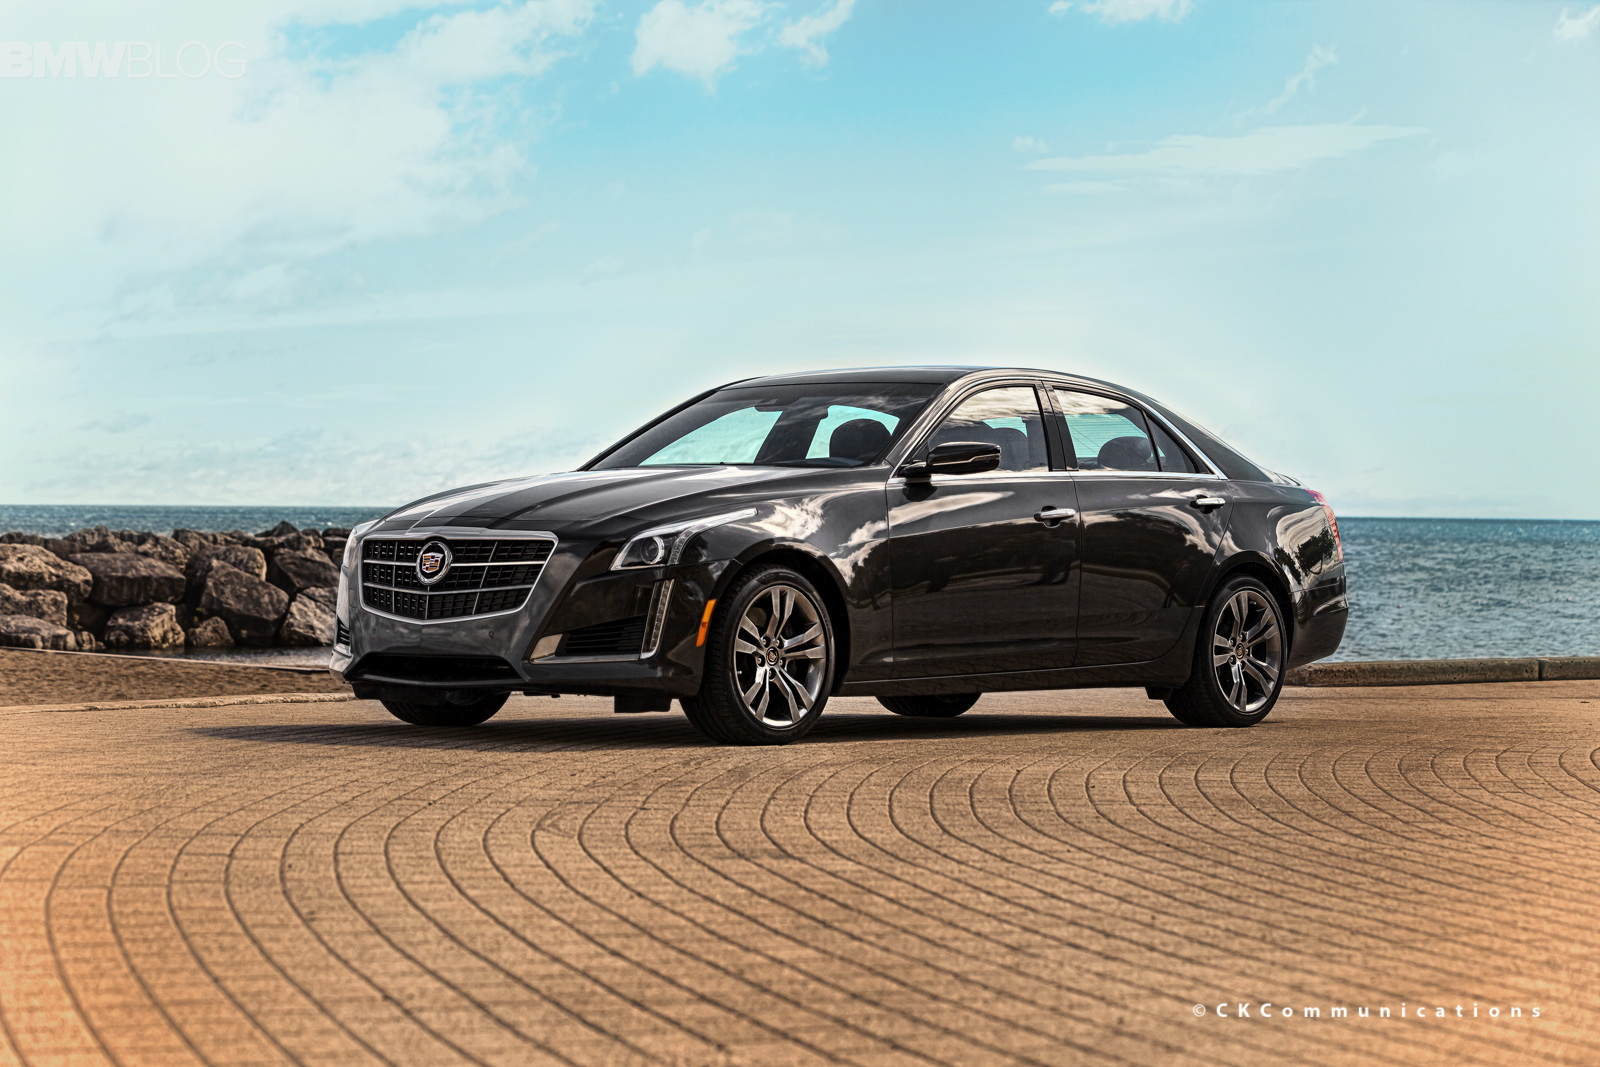 cadillac cts v test drive images 15